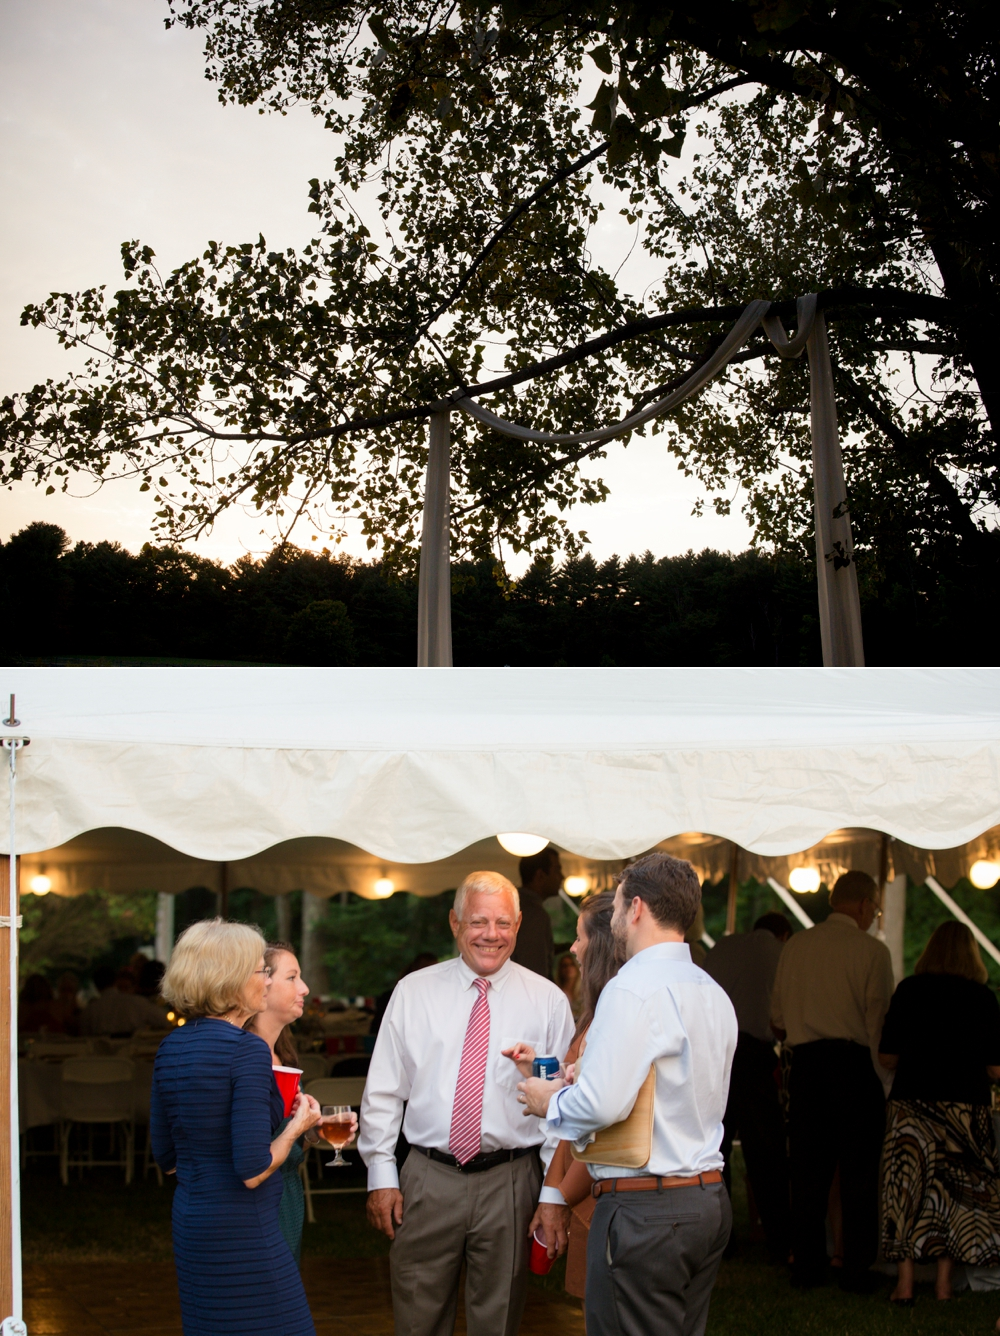 BearSpotFarm_Wedding_Nikki&Alex_0012.jpg